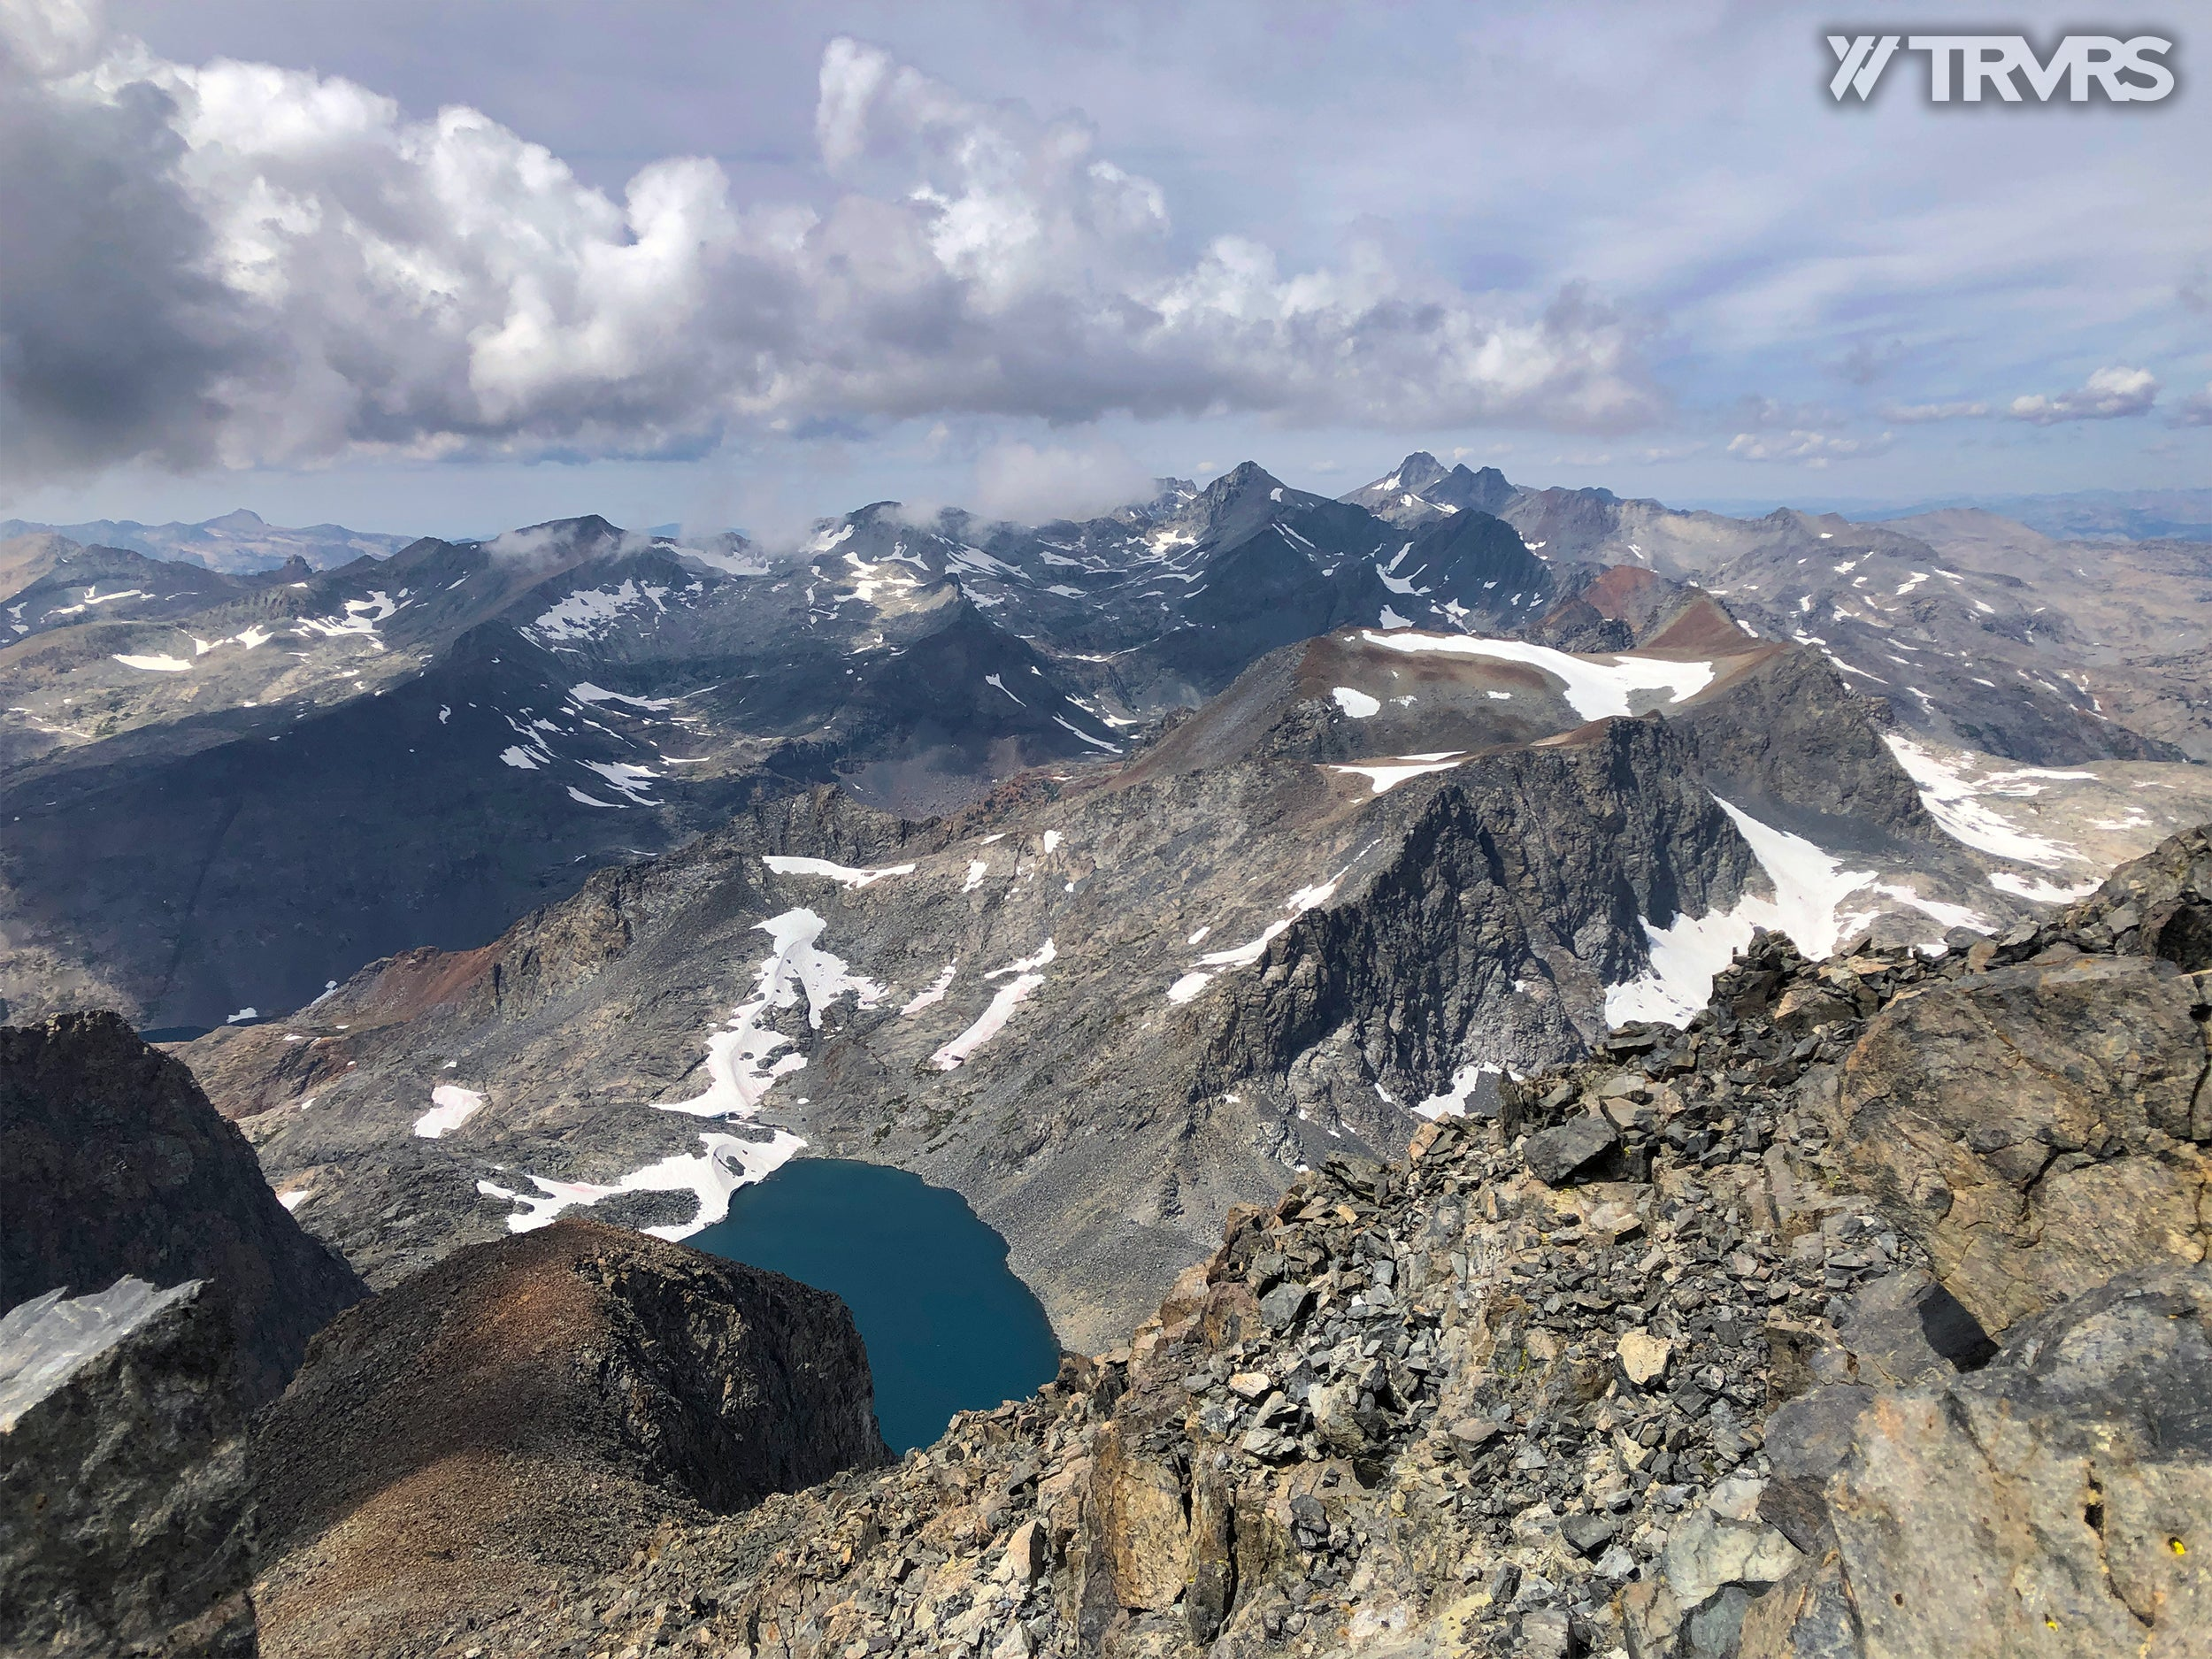 Looking West from Banner Peak - Ritter-Banner Saddle, Lake Catherine, Glacier Pass, Thousand Island Lake, River Trail, Pacific Crest Trail, Middle Fork, Agnew Meadow, Ansel Adams Wilderness, Mammoth Lakes, Sierra Nevada | TRVRS Apparel